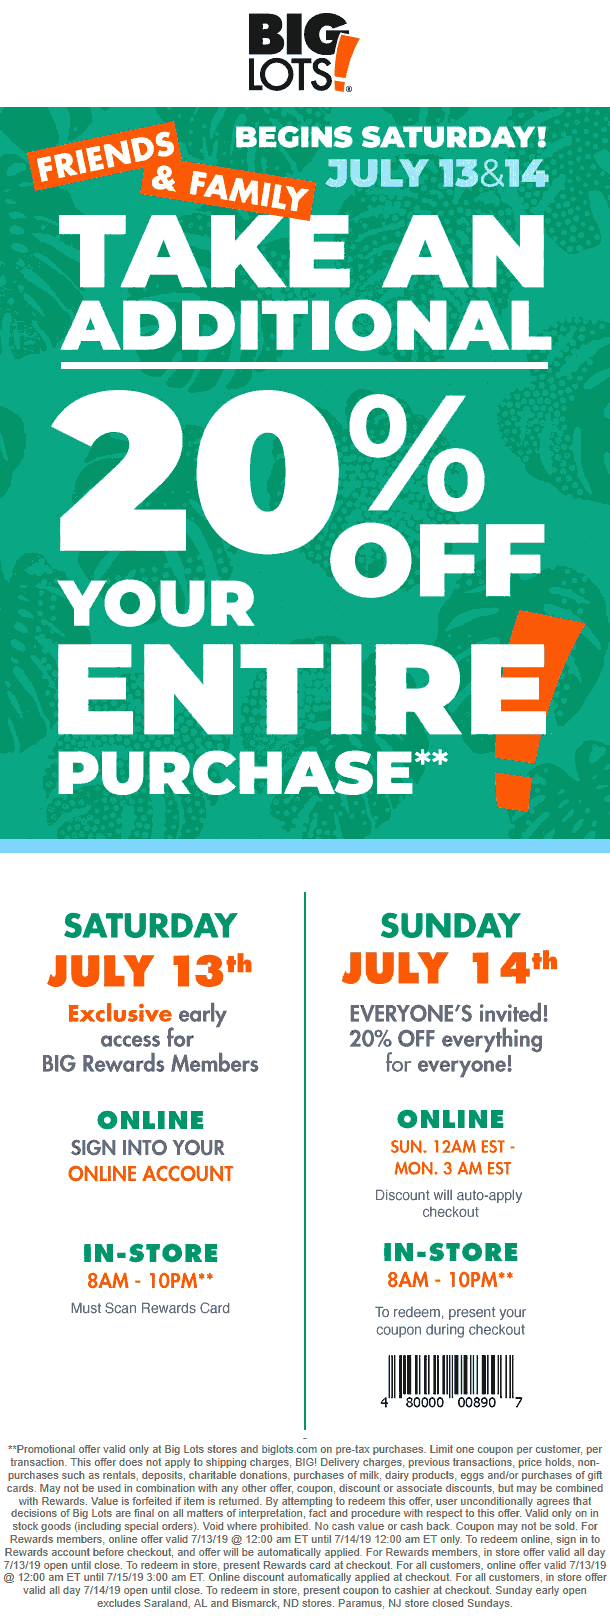 Big Lots Coupon January 2020 Extra 20% off this weekend at Big Lots, ditto online